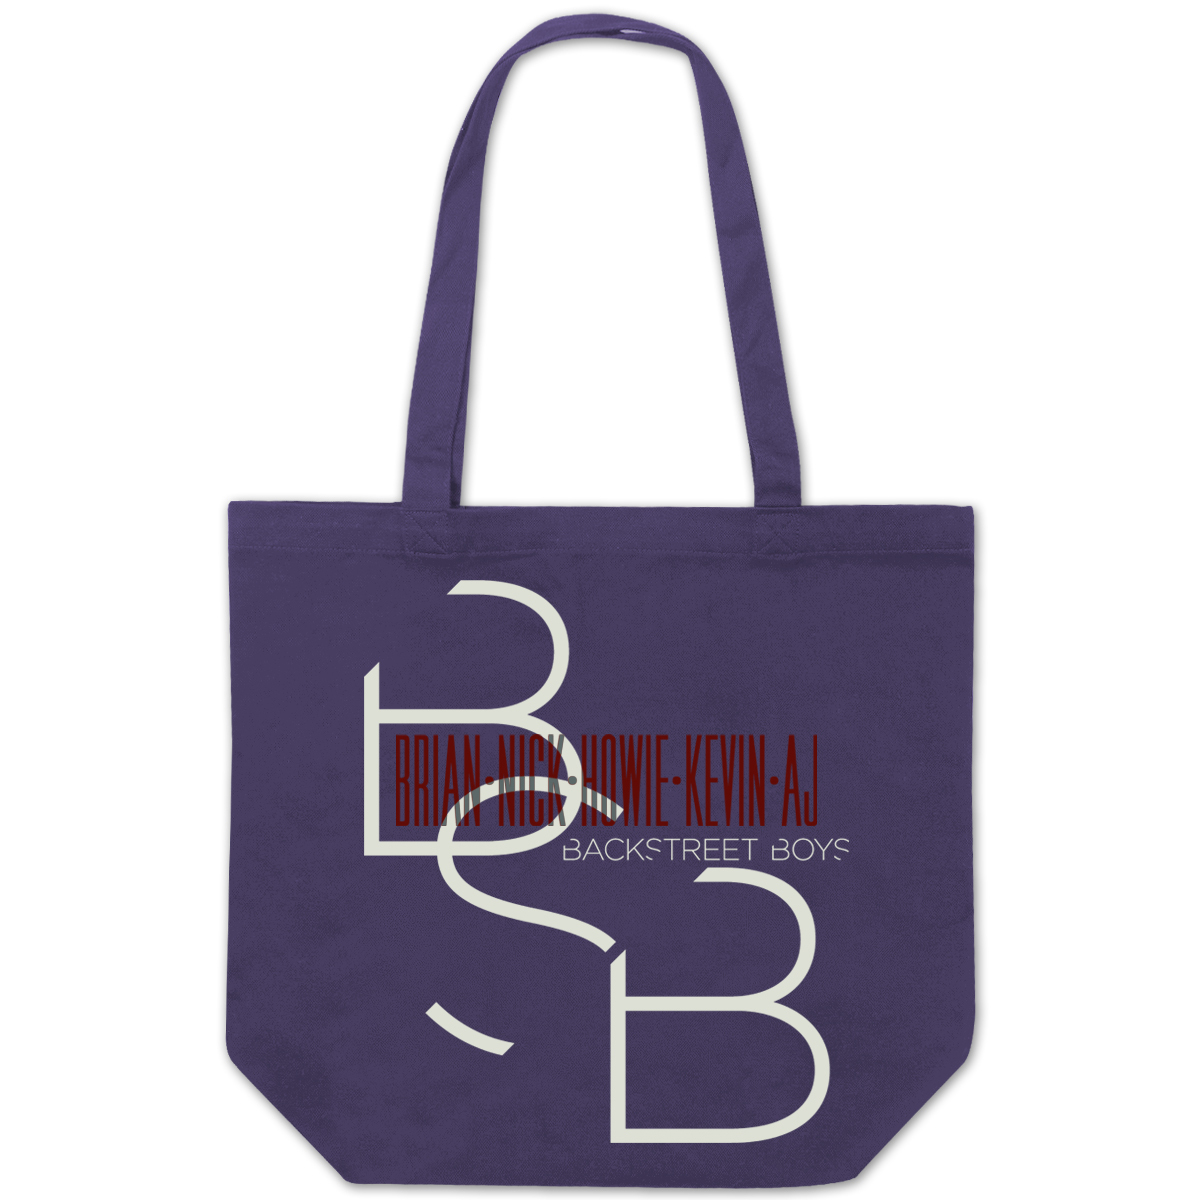 Backstreet Boys Connection Tote Bag